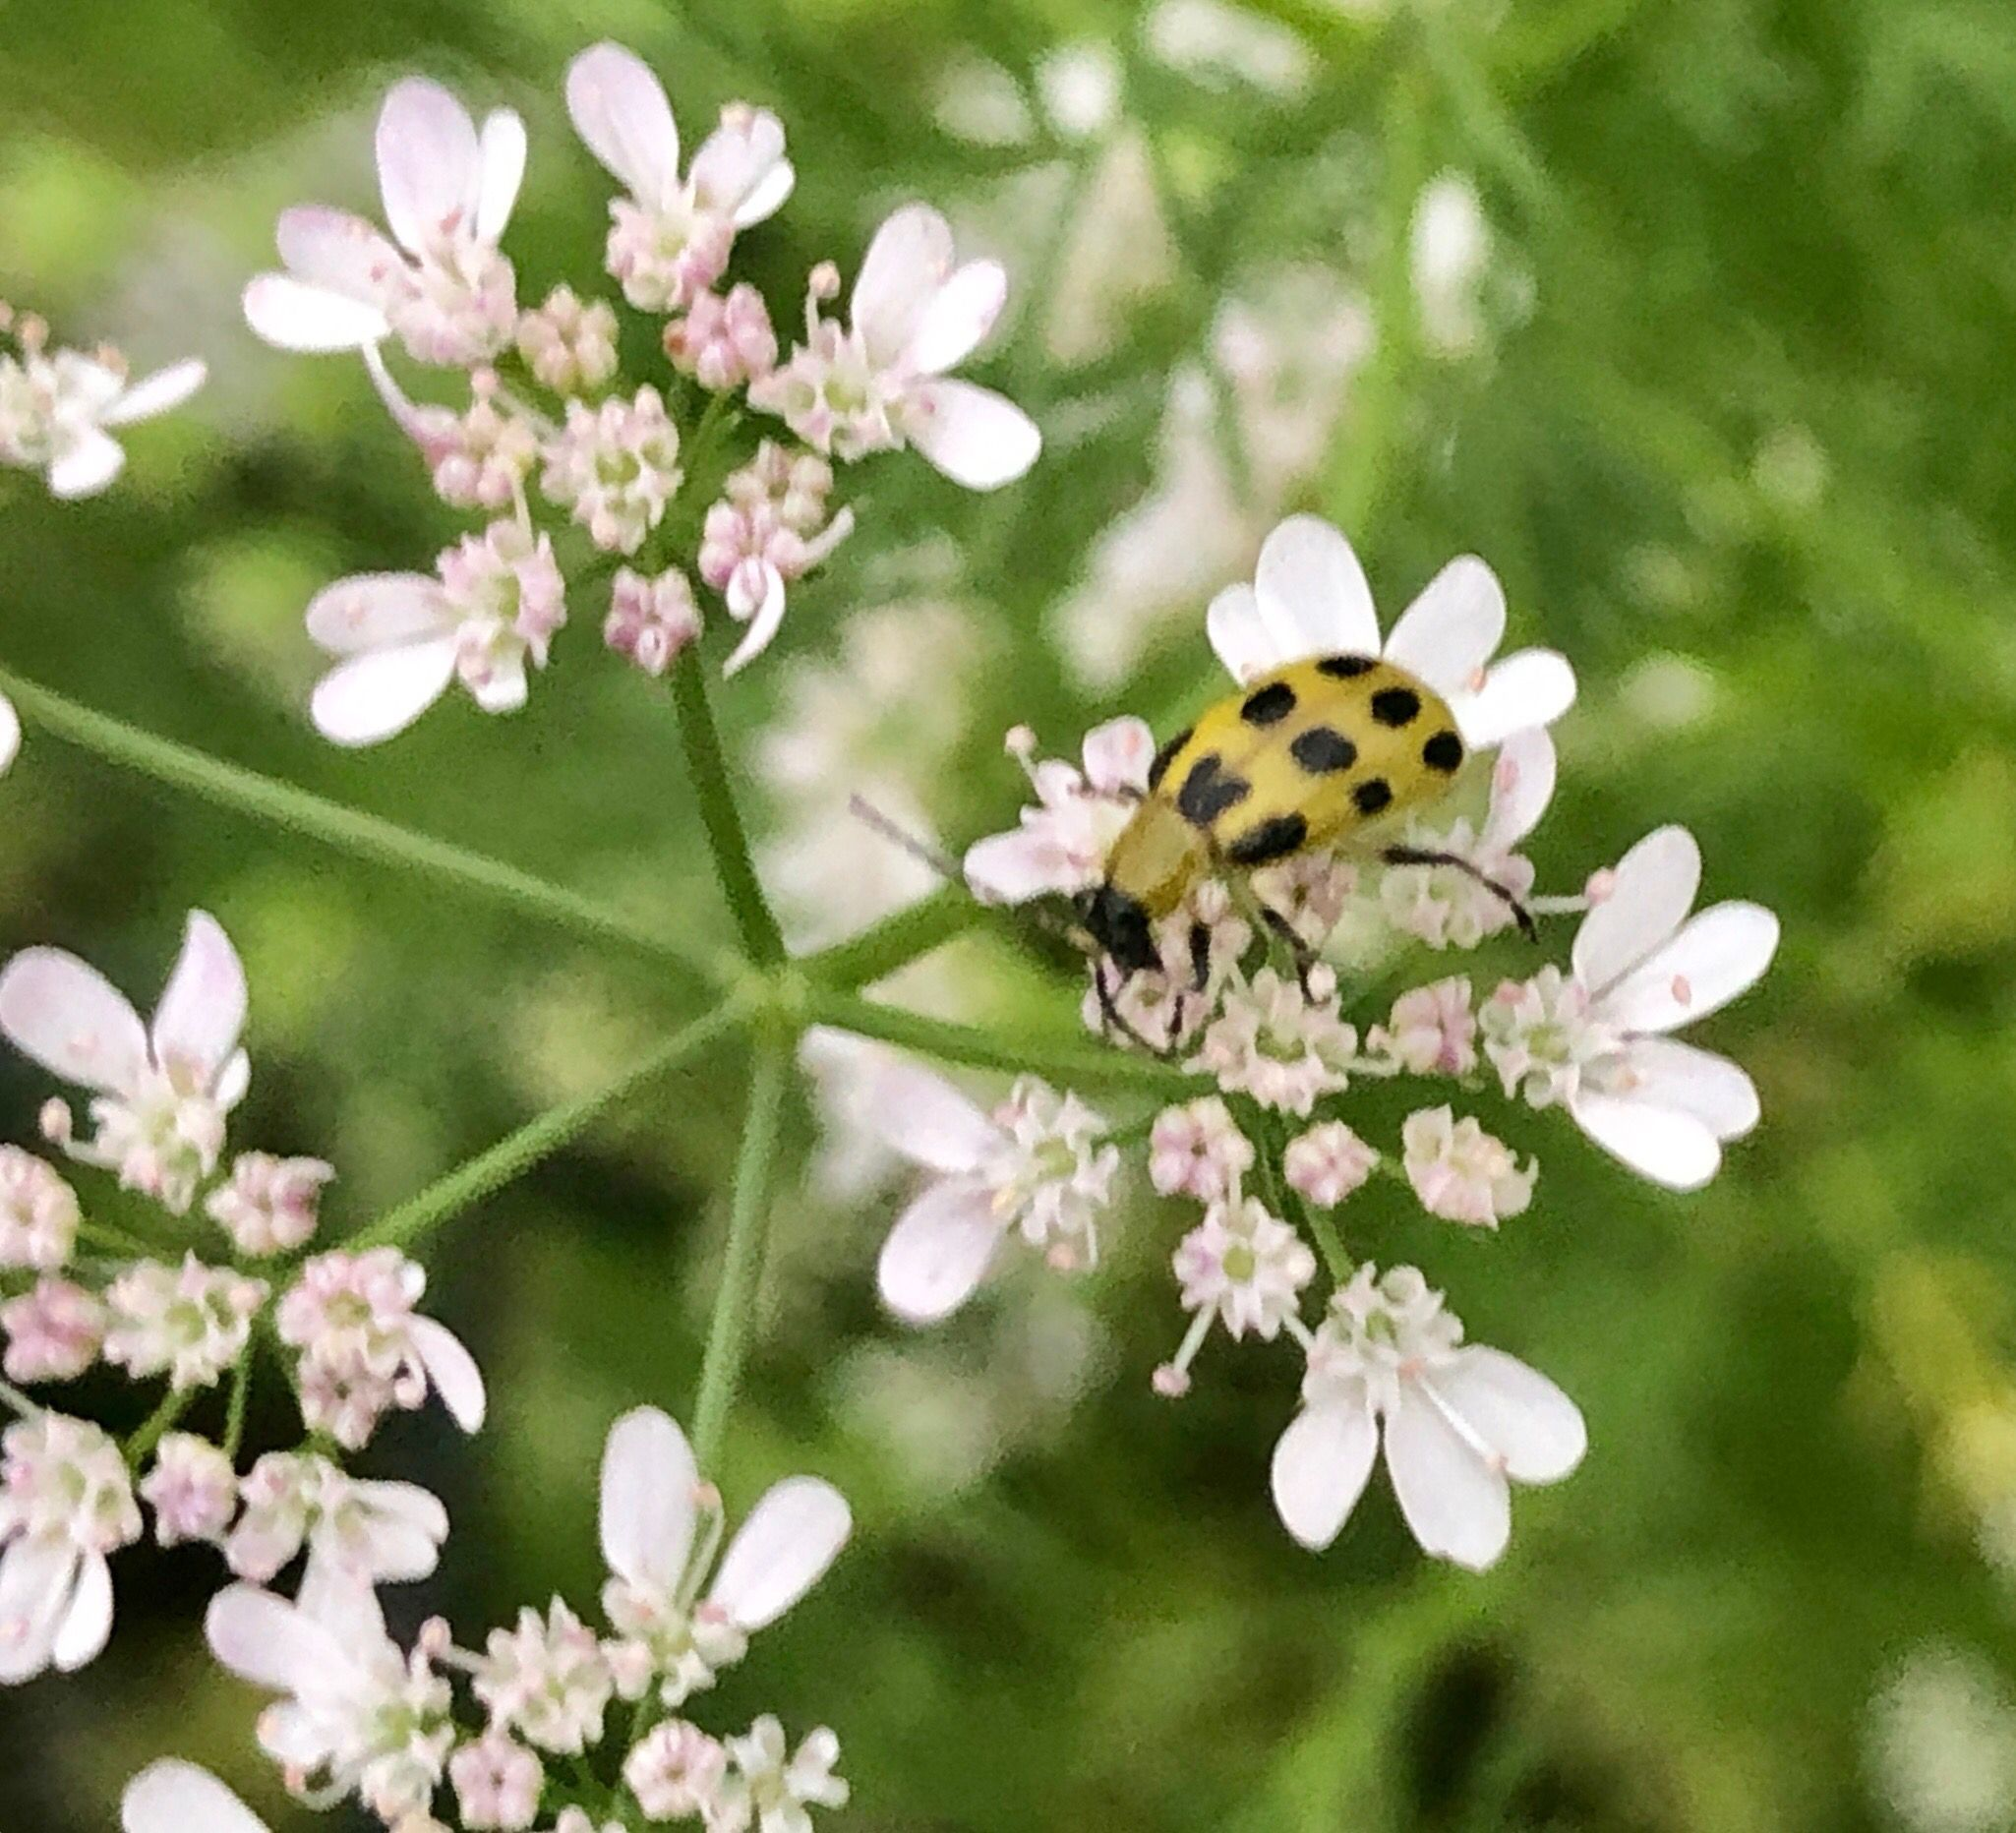 Pin by From Seed to Spoon on Managing Garden Pests